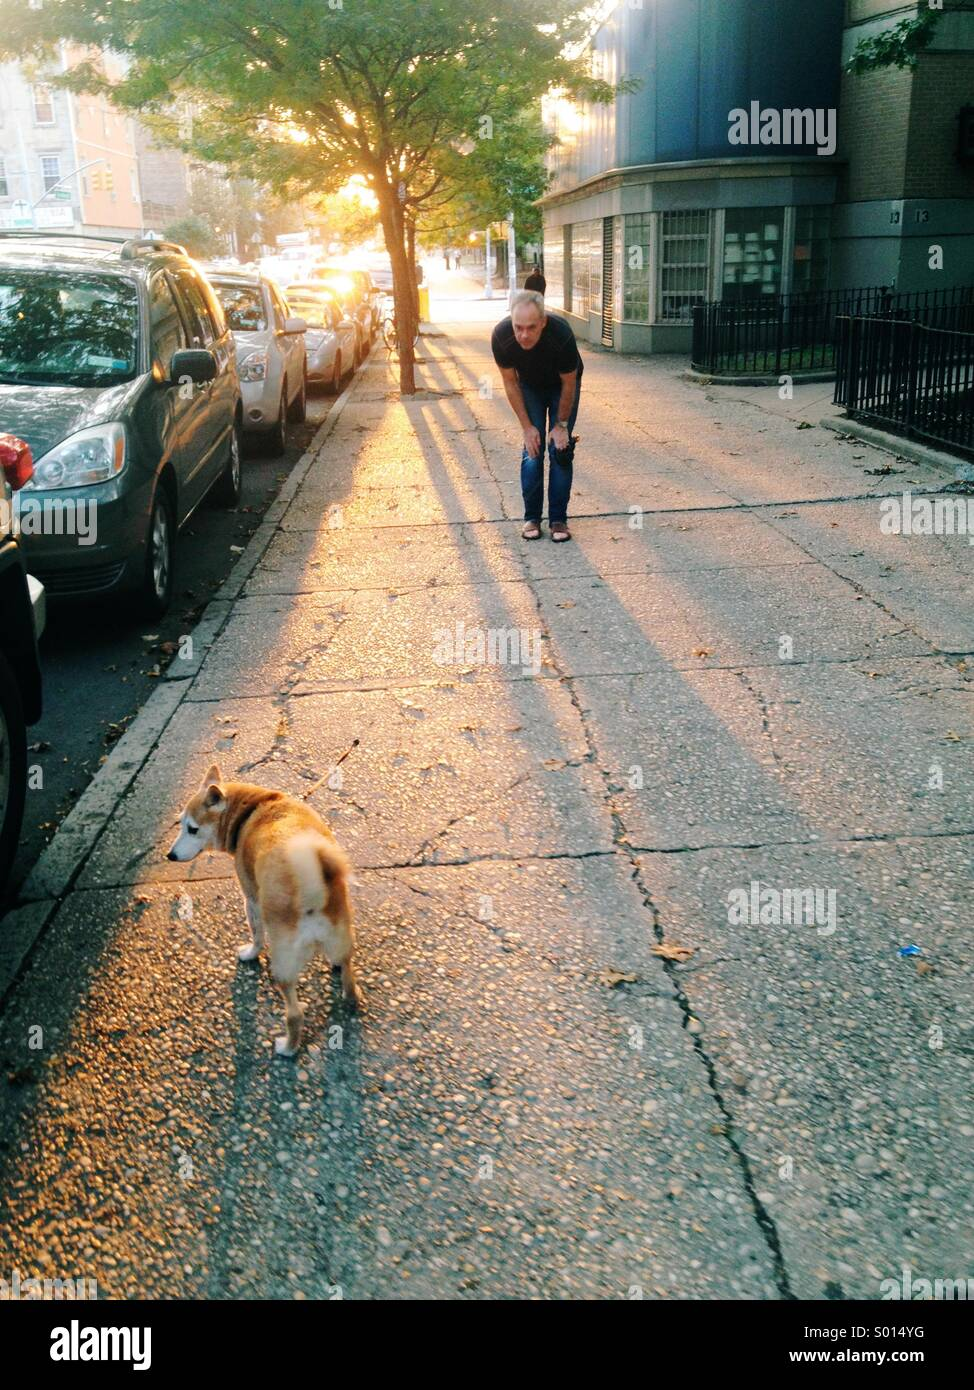 Man cooing pet dog that refuses to walk - Stock Image